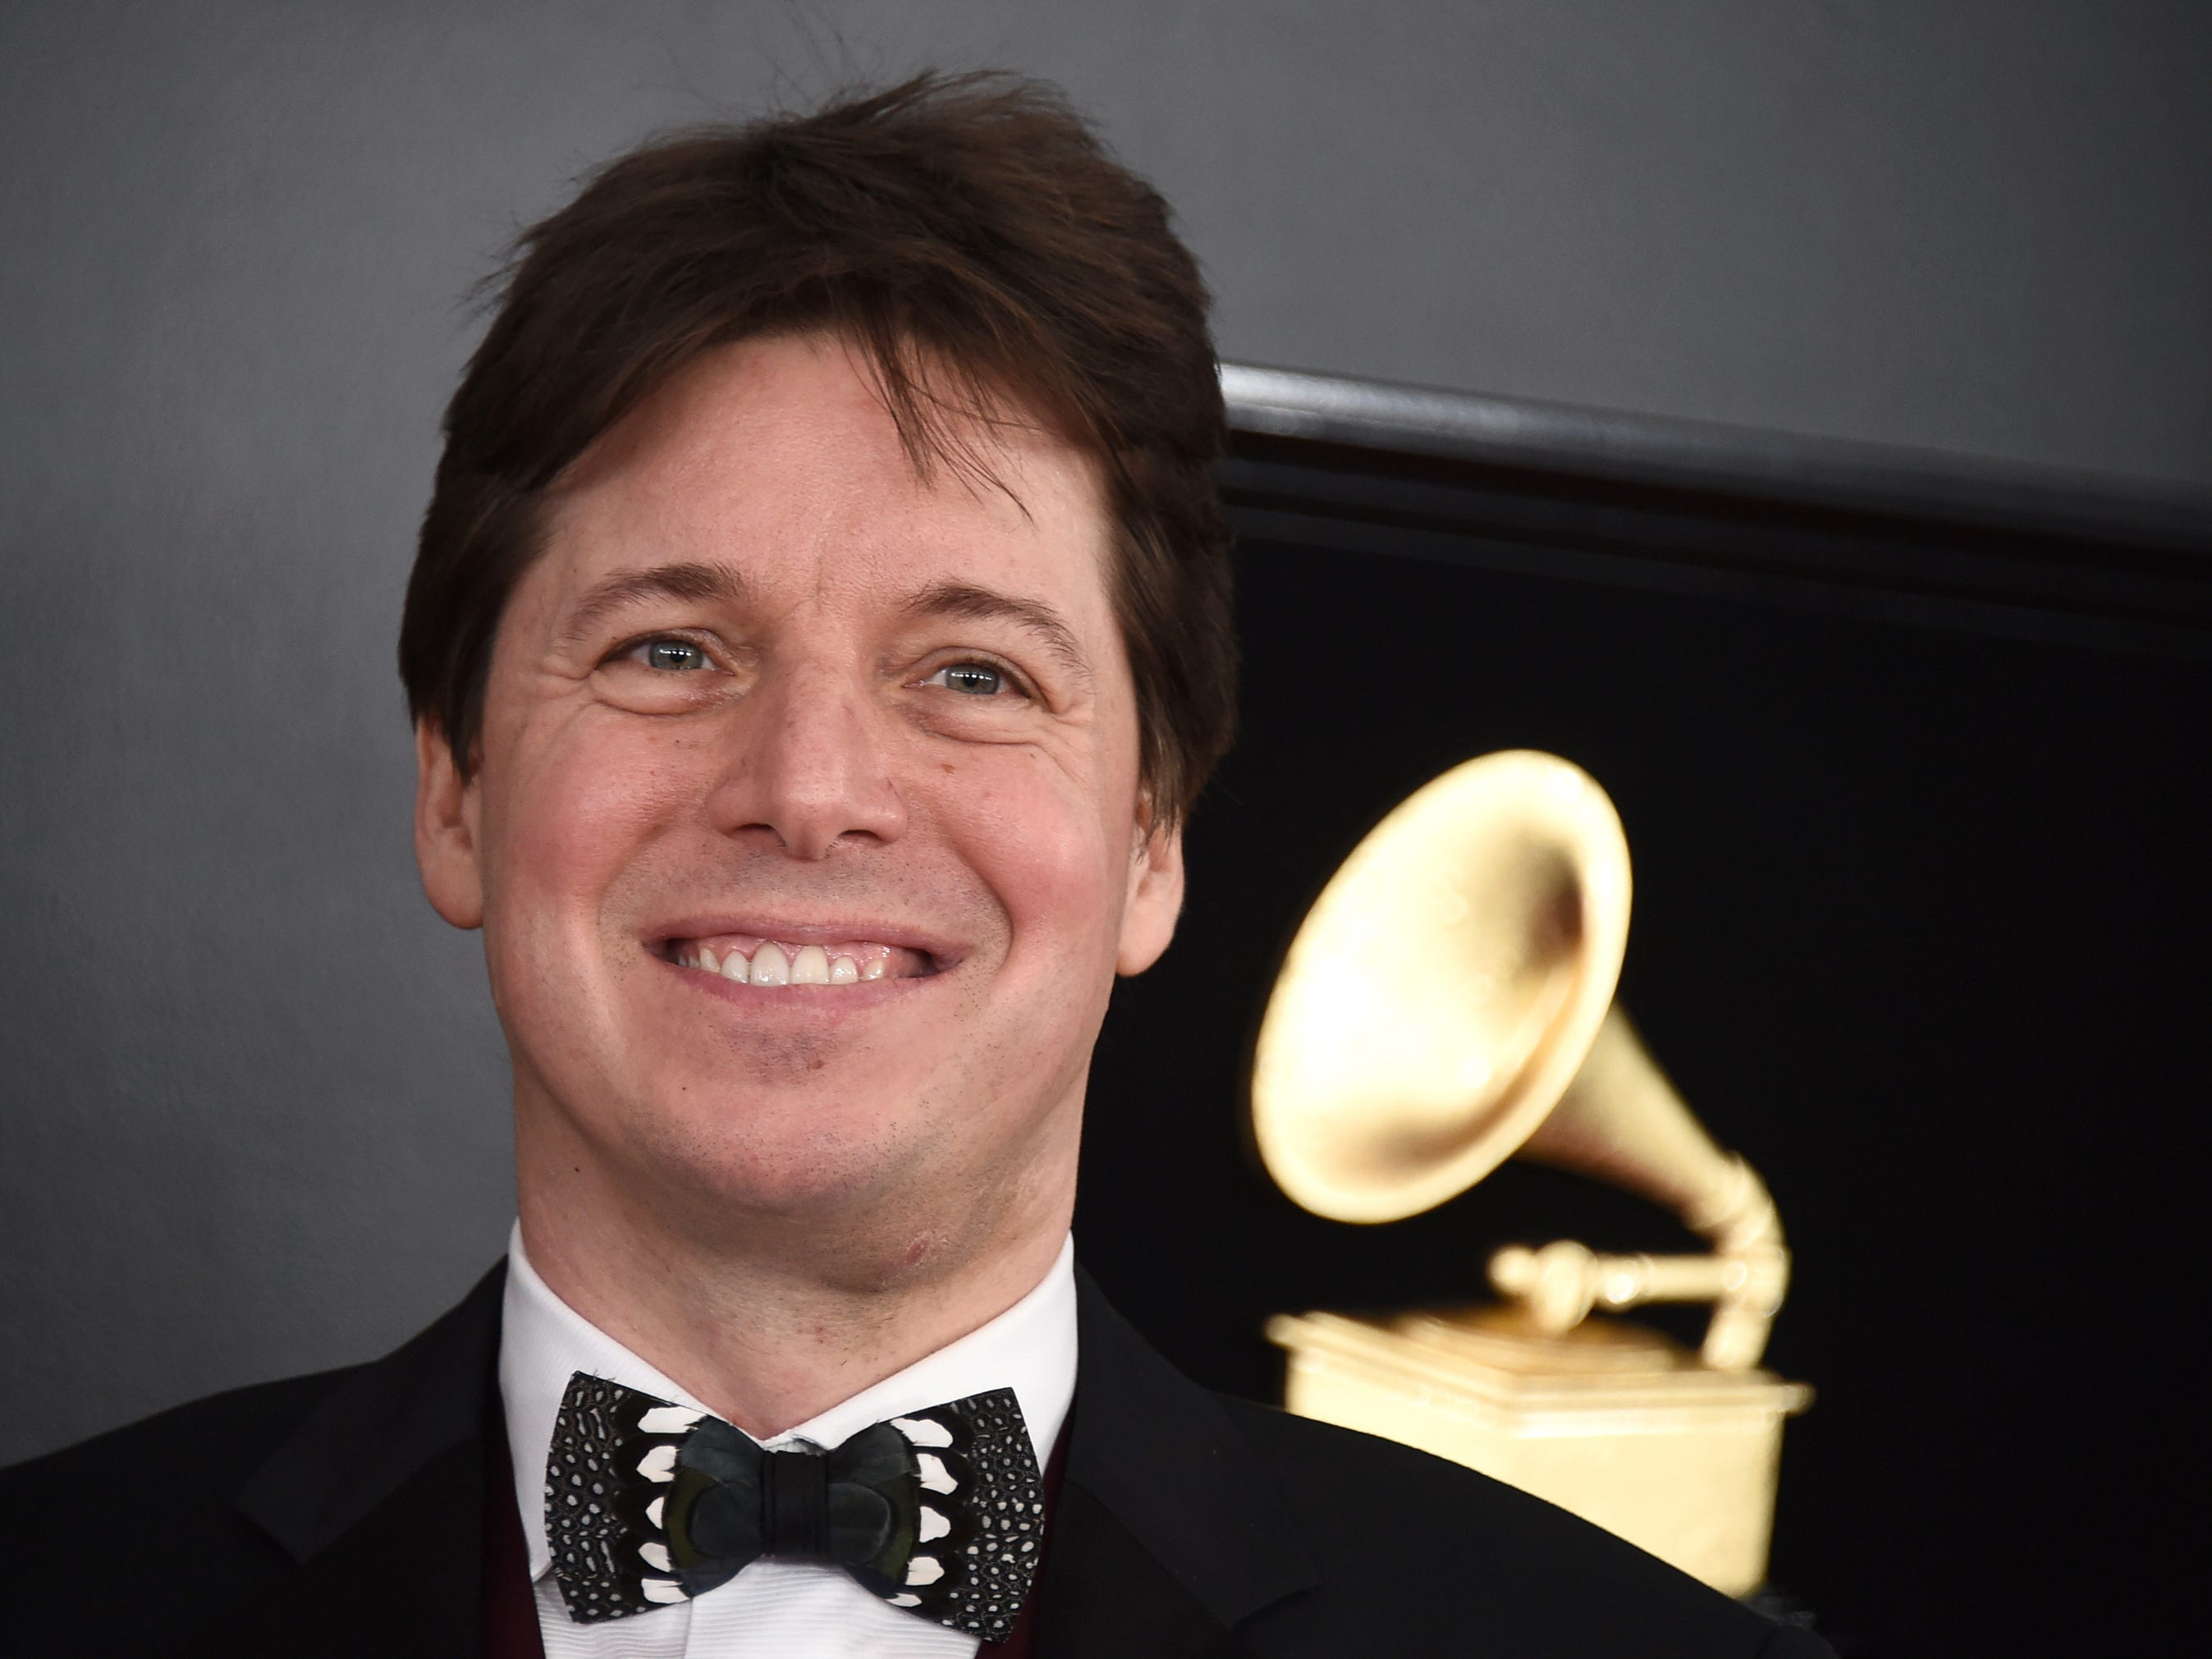 Joshua Bell arrives at the 61st annual Grammy Awards at the Staples Center on Sunday, Feb. 10, 2019, in Los Angeles.